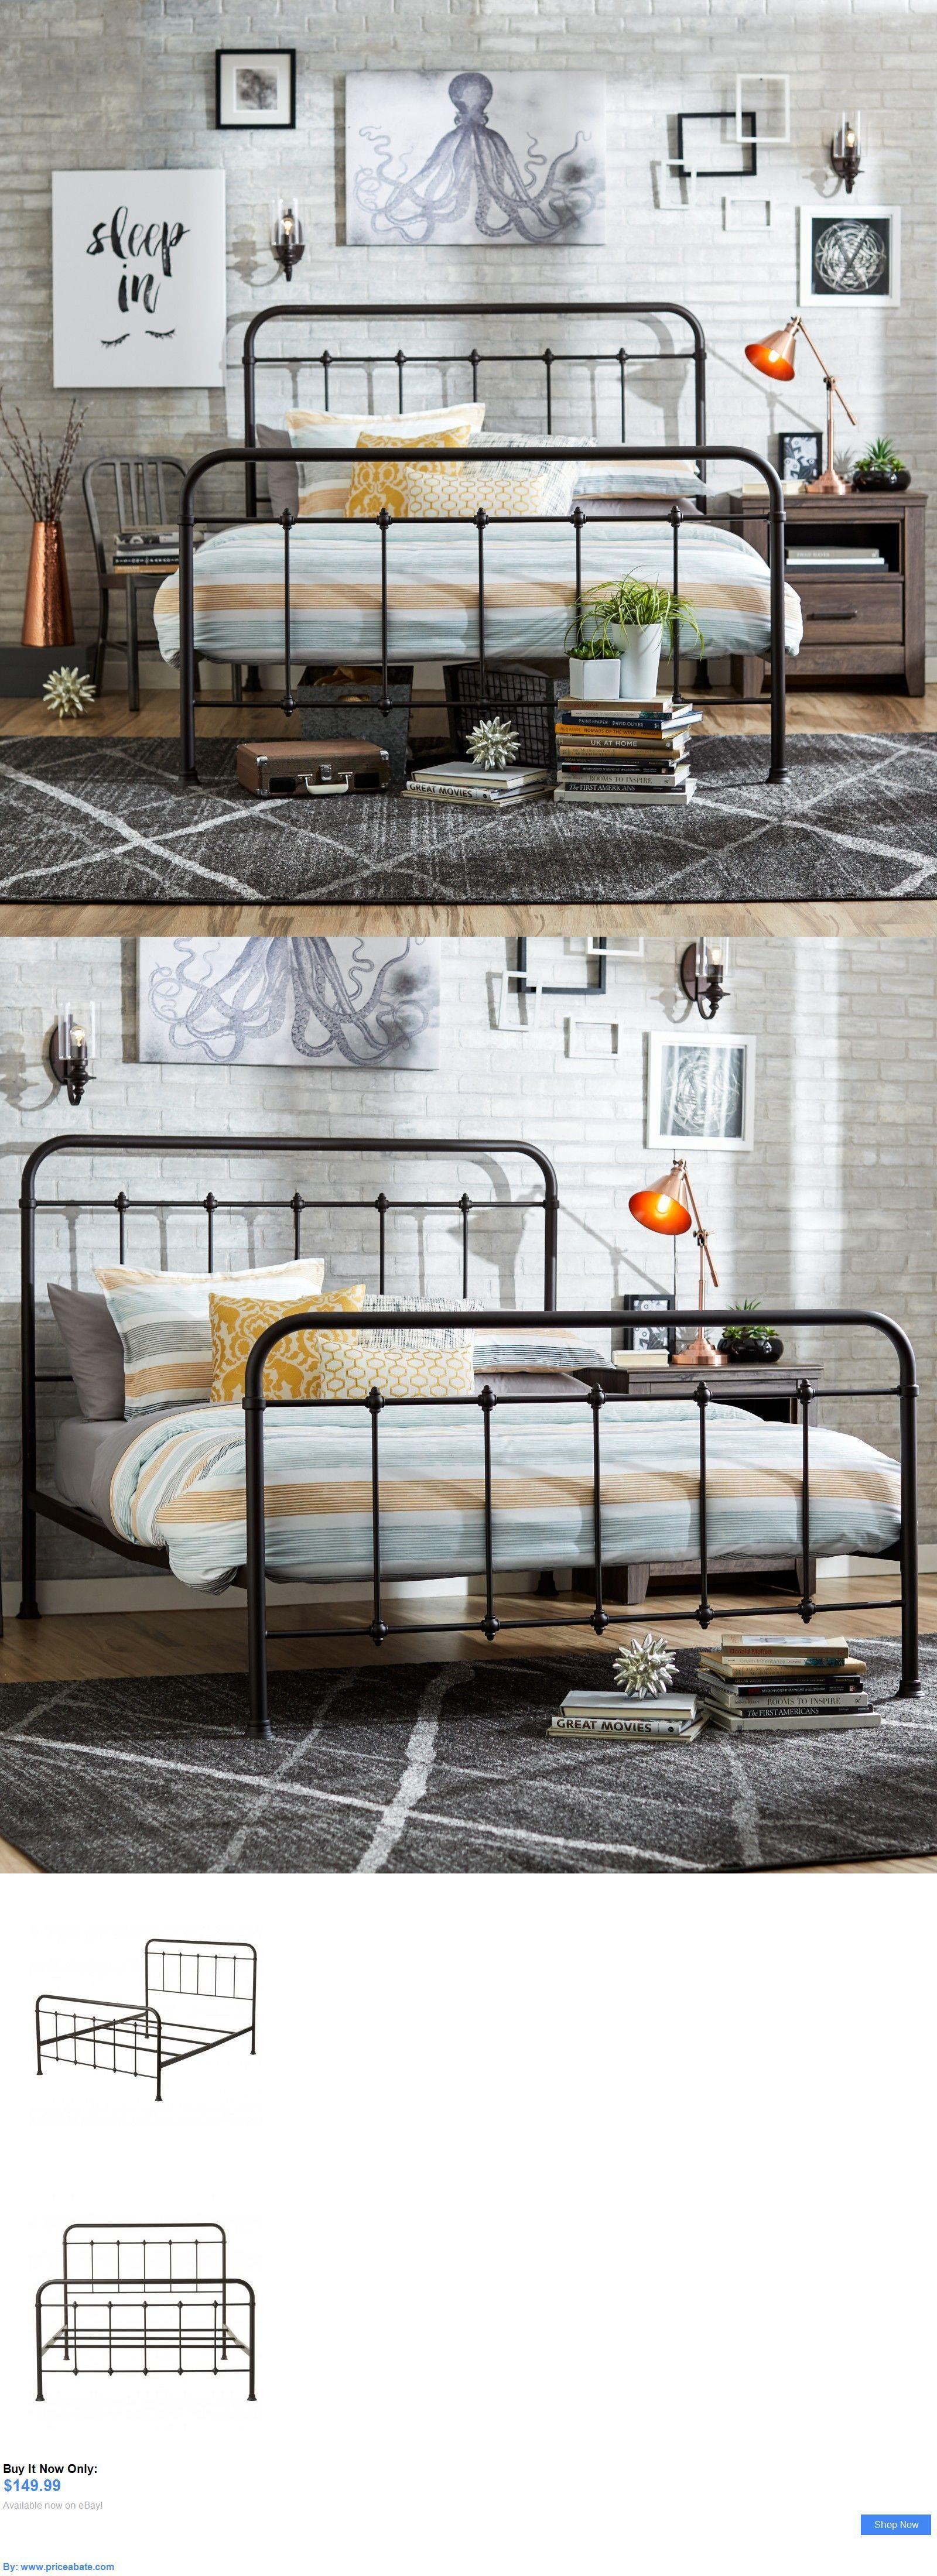 bedding queen size bed frame metal headboard footboard adjustable height antique rustic buy it now